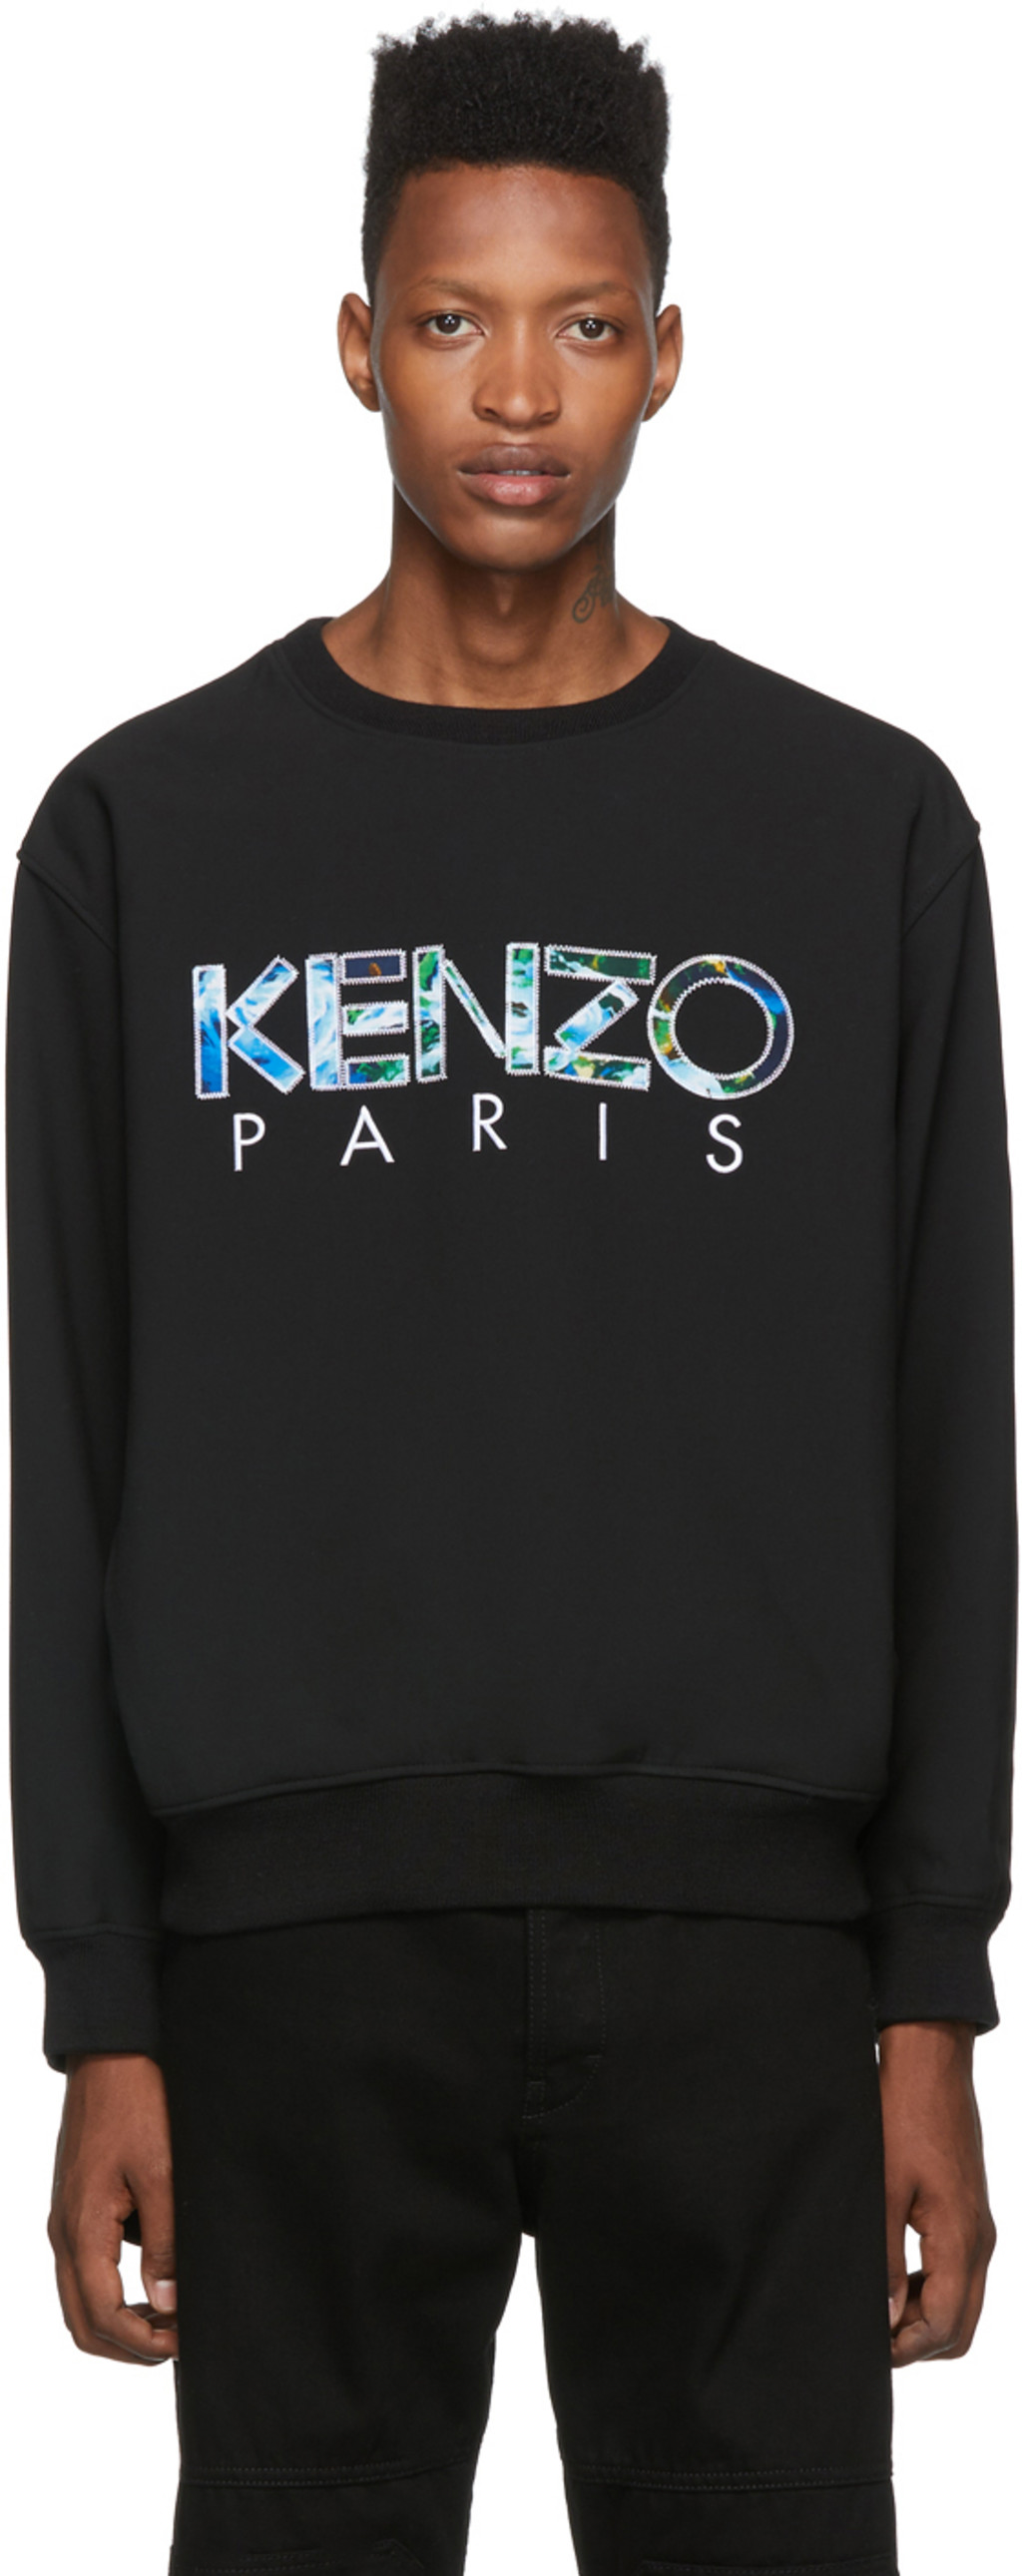 f82199098a46 Kenzo for Men FW19 Collection | SSENSE